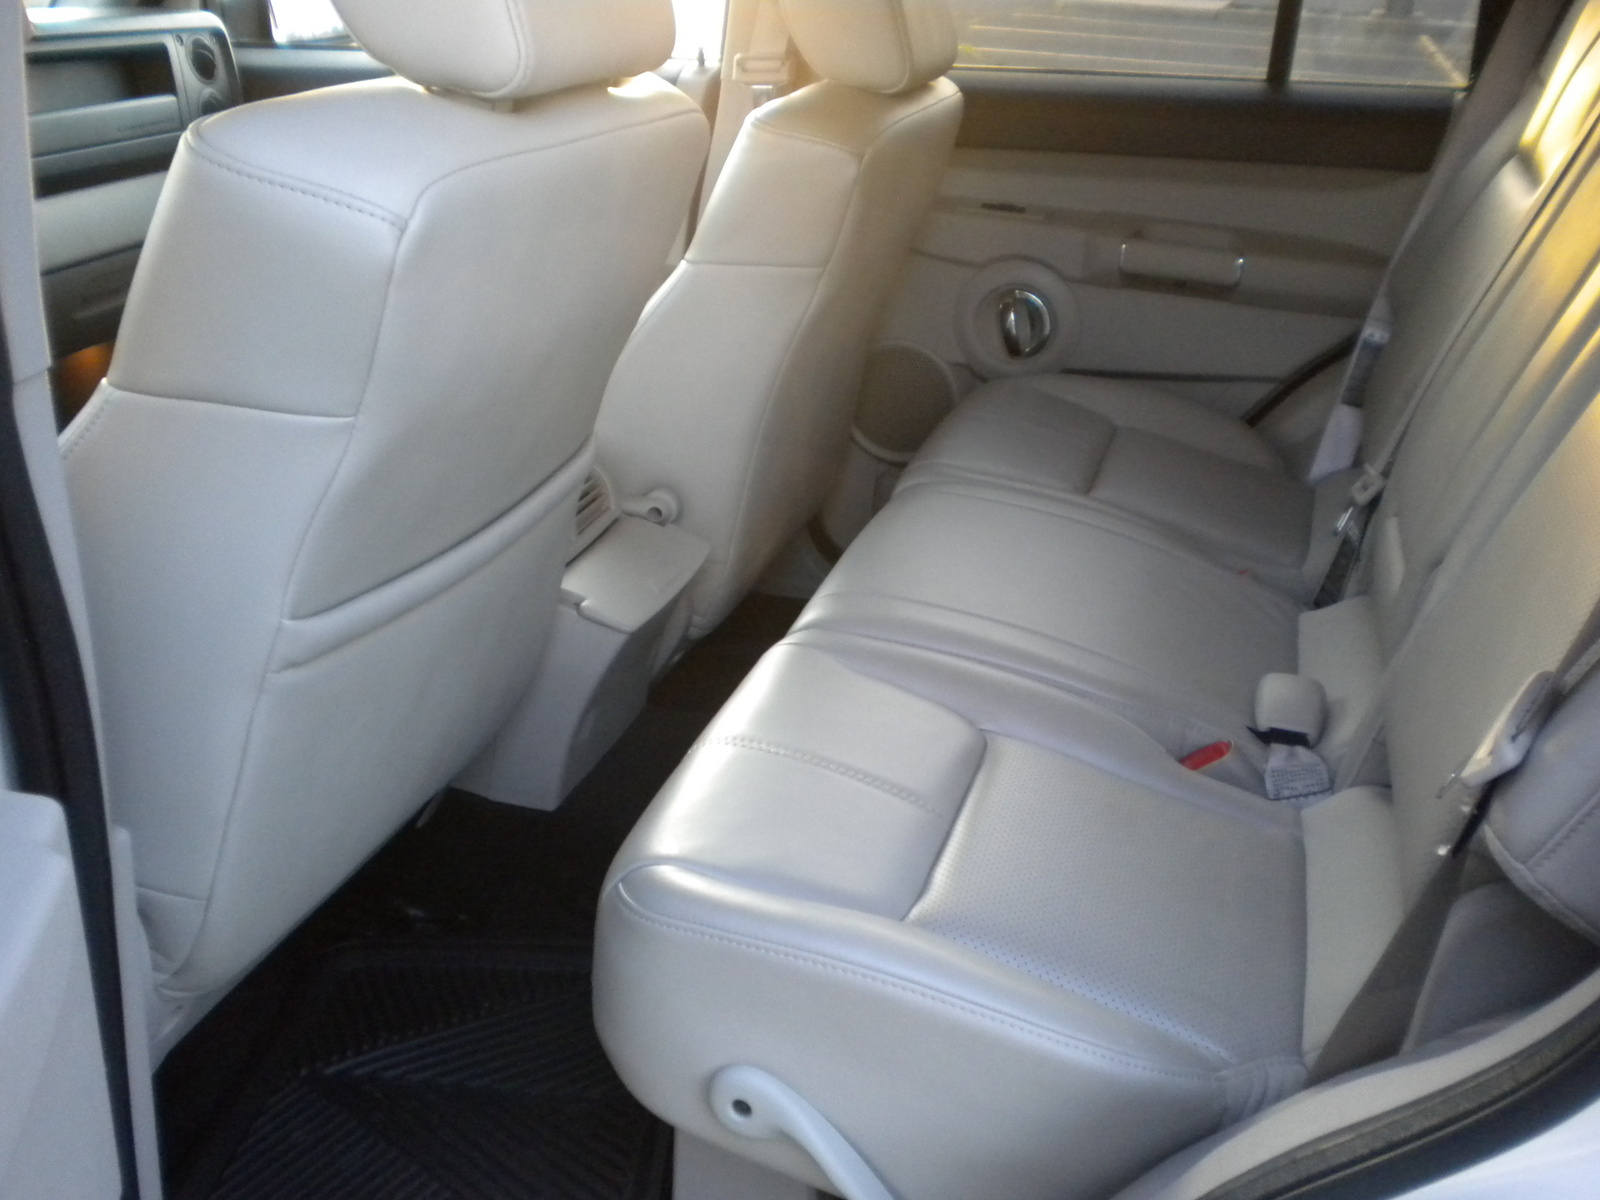 2006 Jeep Commander Limited Interior